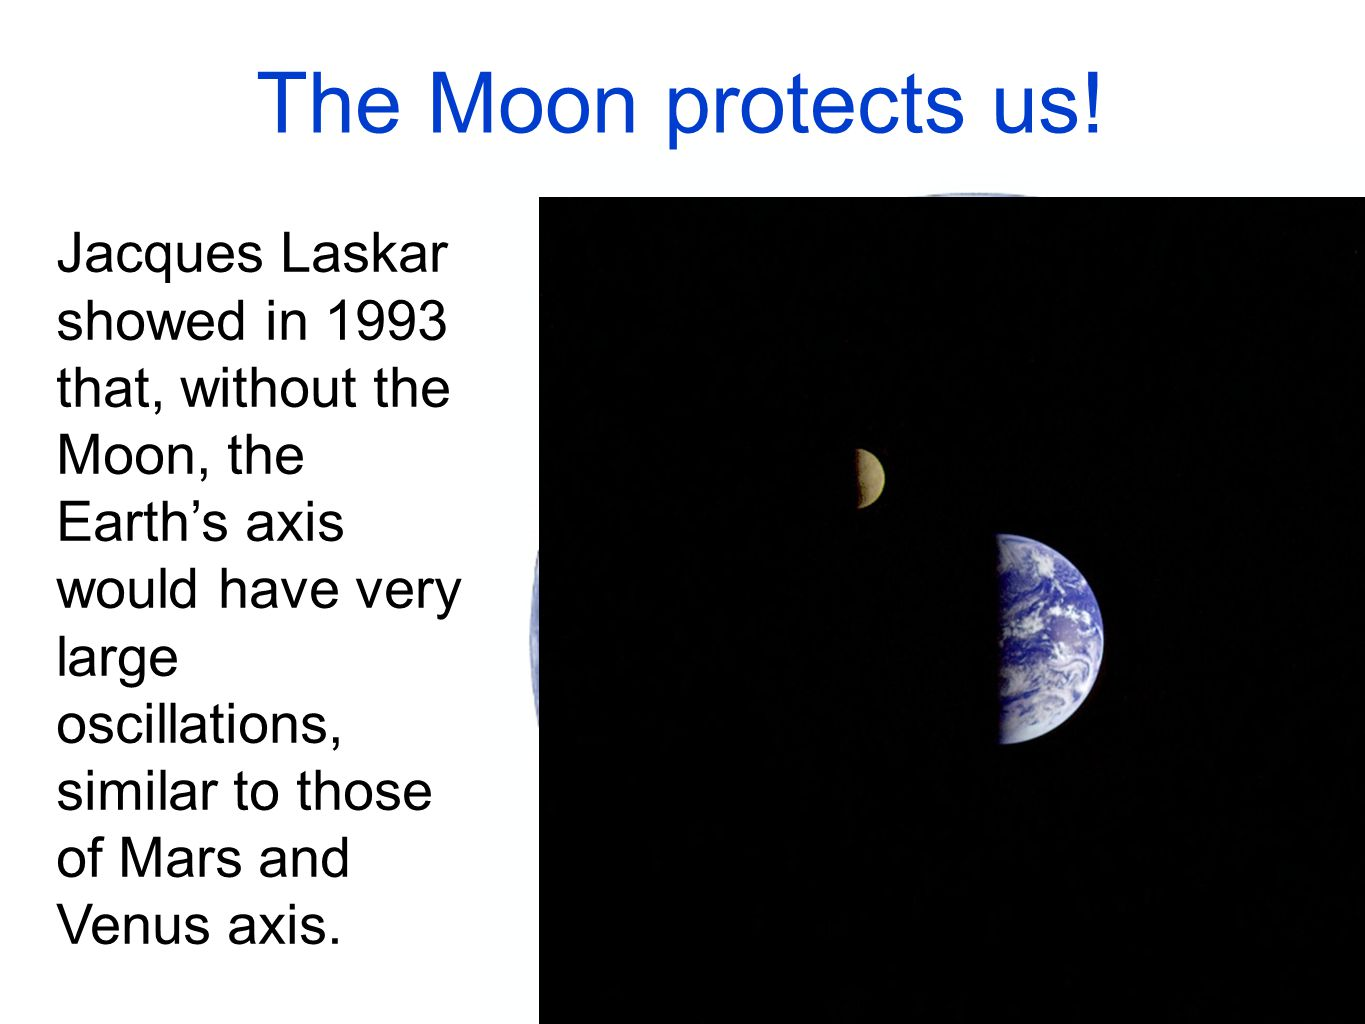 The Moon protects us.